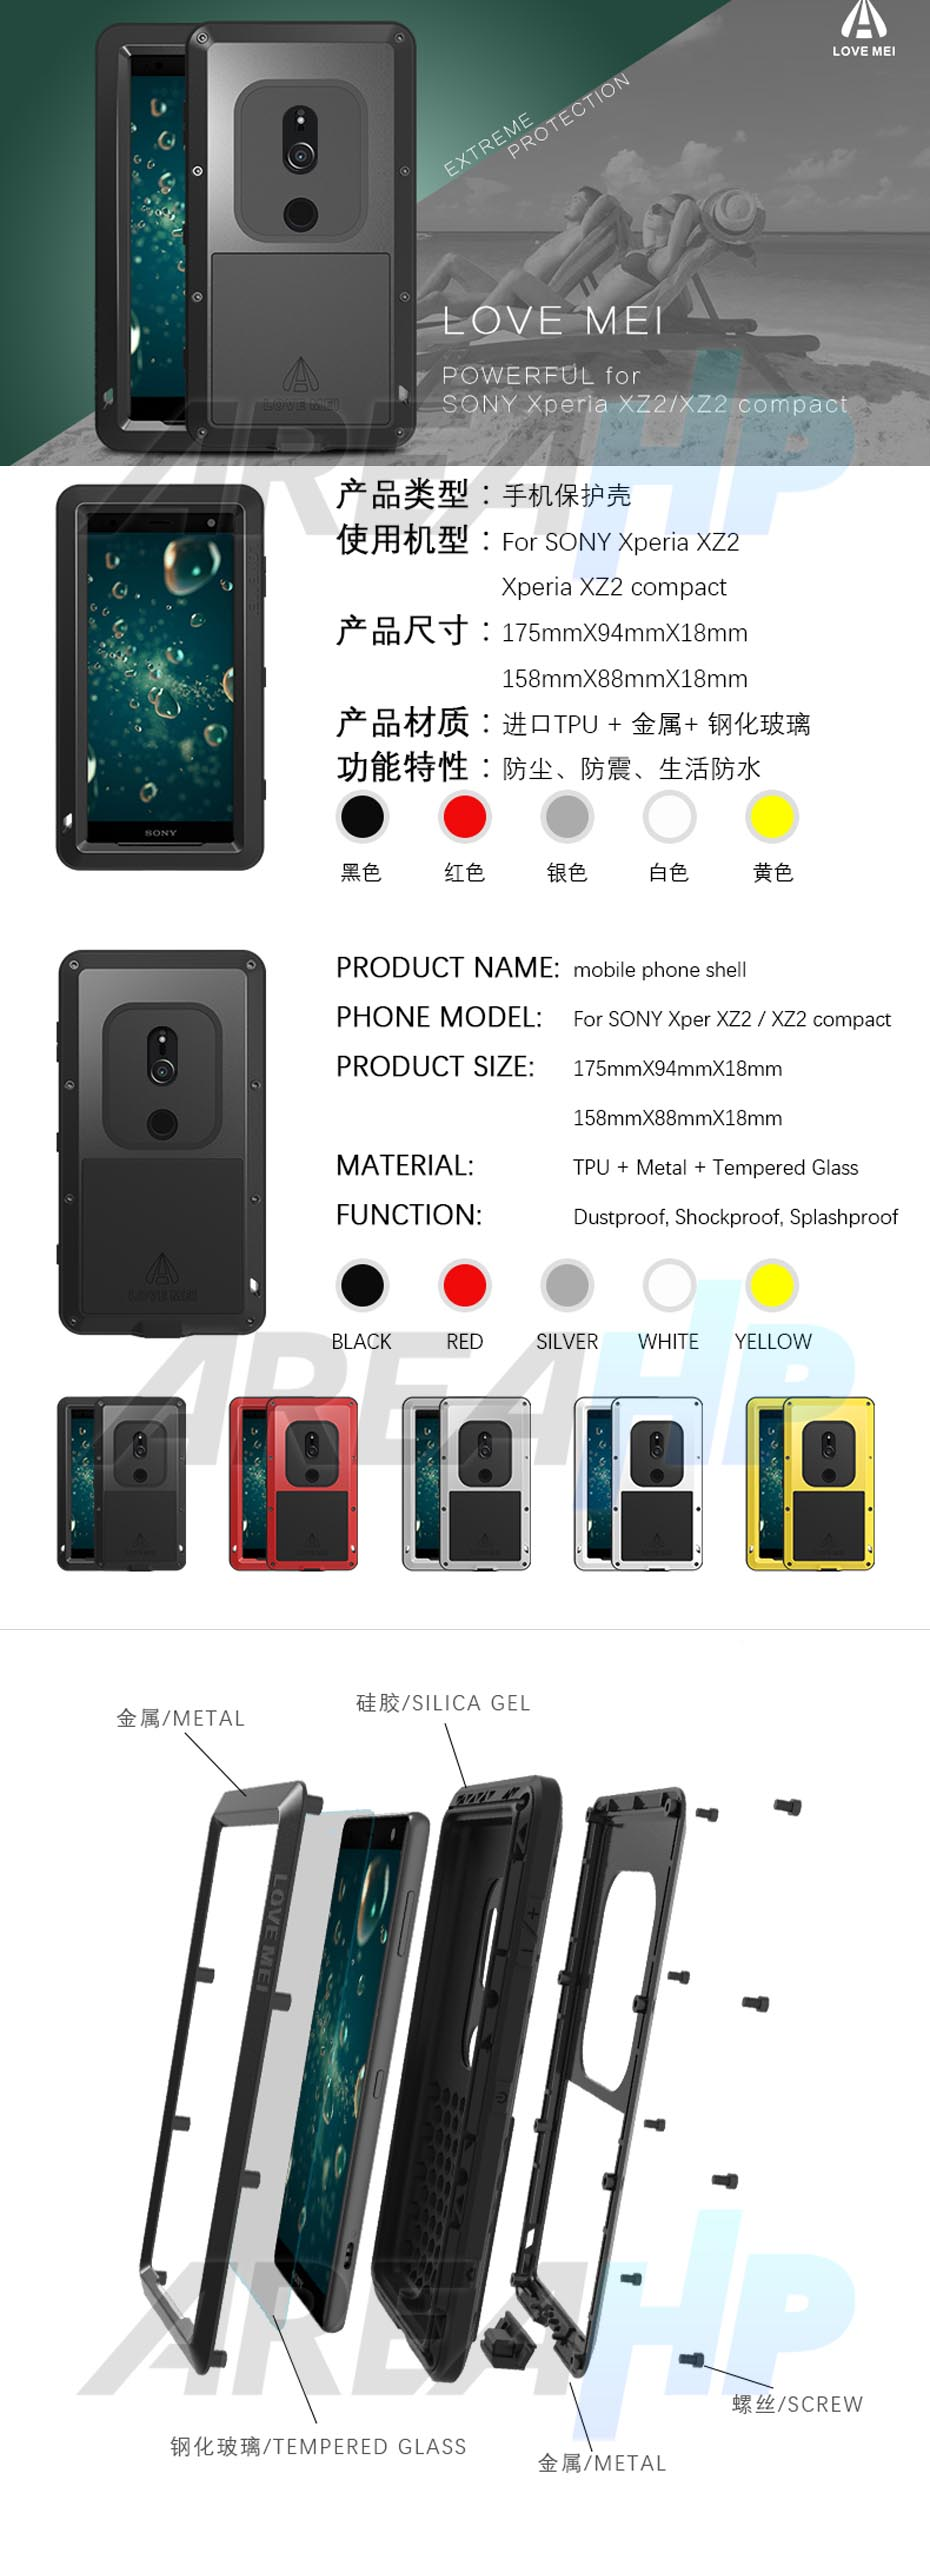 Love Mei Powerful Case for Sony XZ 2 Overview